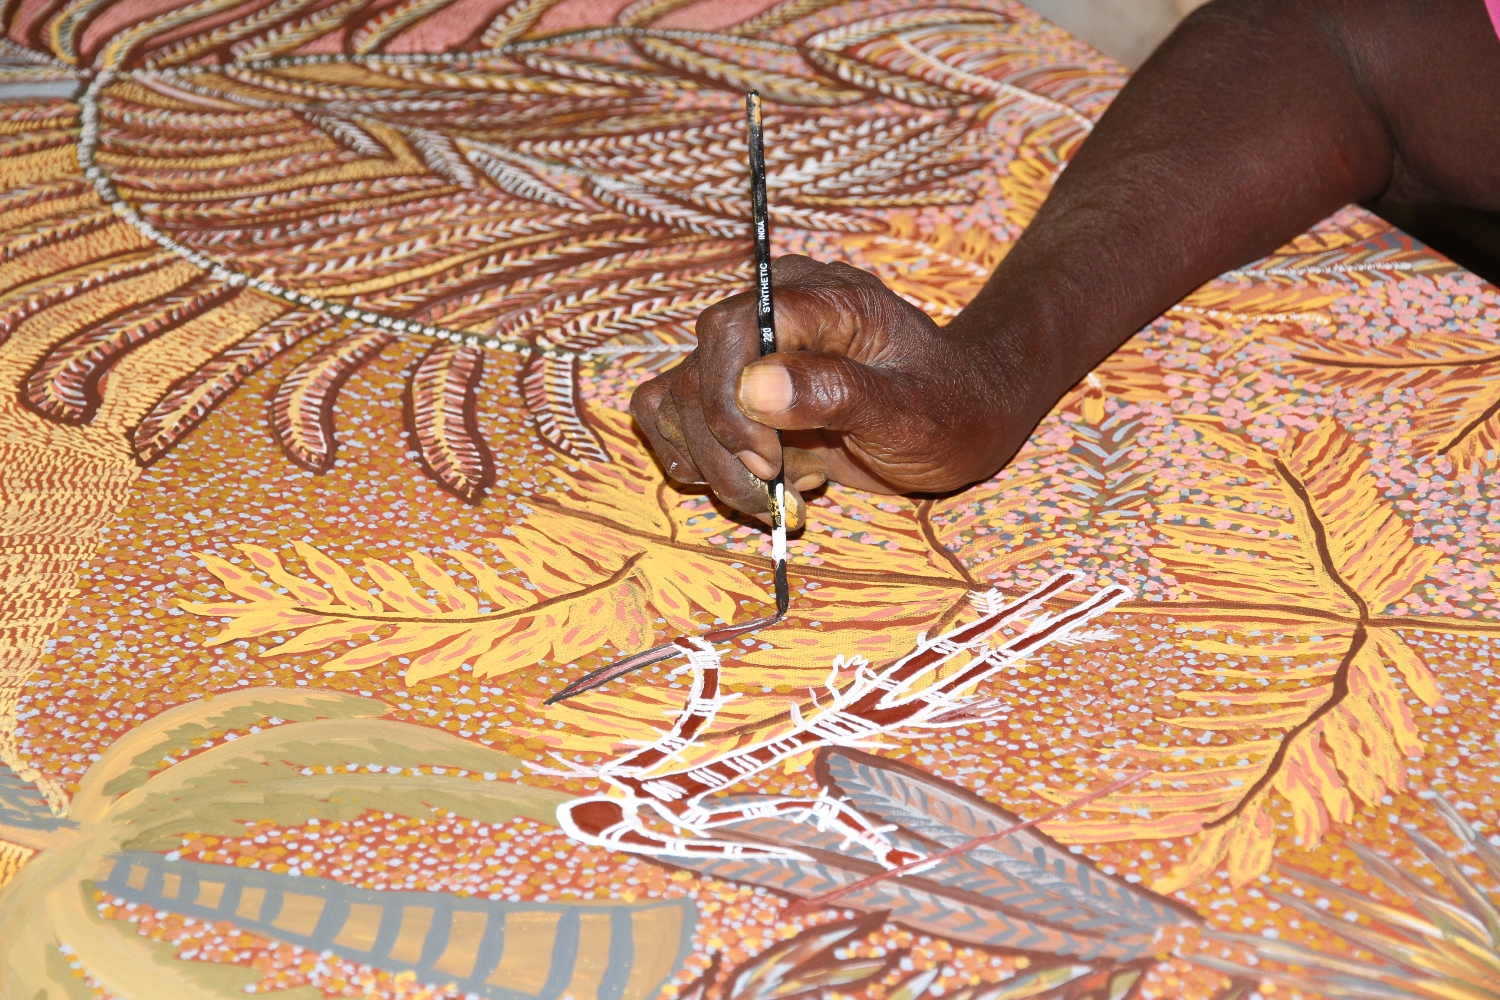 Artist Mary Puntji Clement painting at Kira Kiro Art Centre. © AGWA 2015